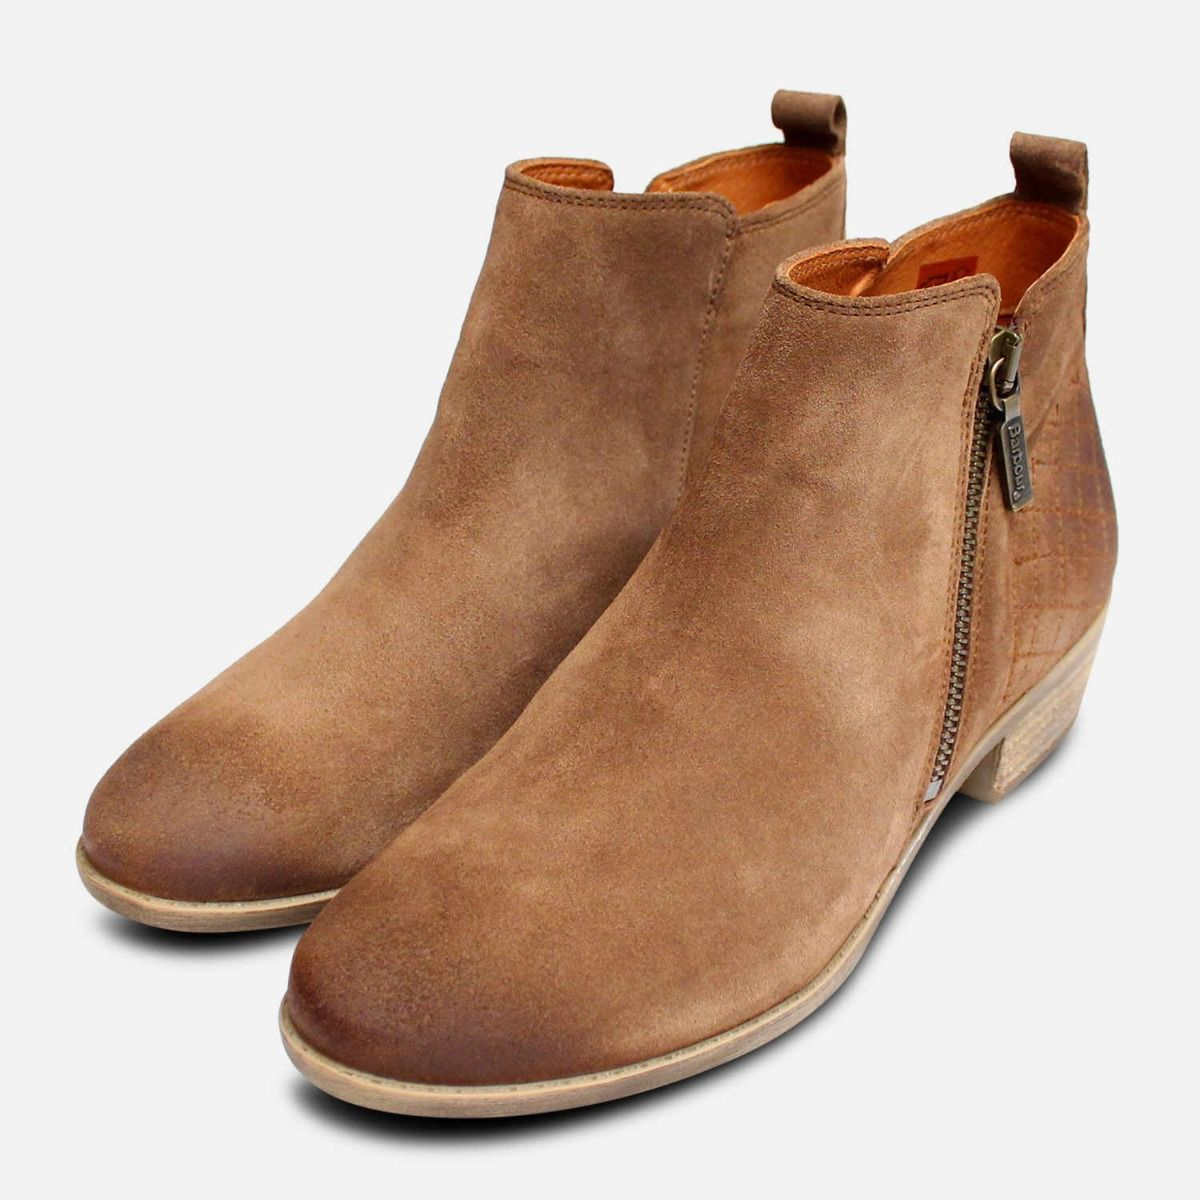 Barbour Waxy Brown Tobacco Suede Side